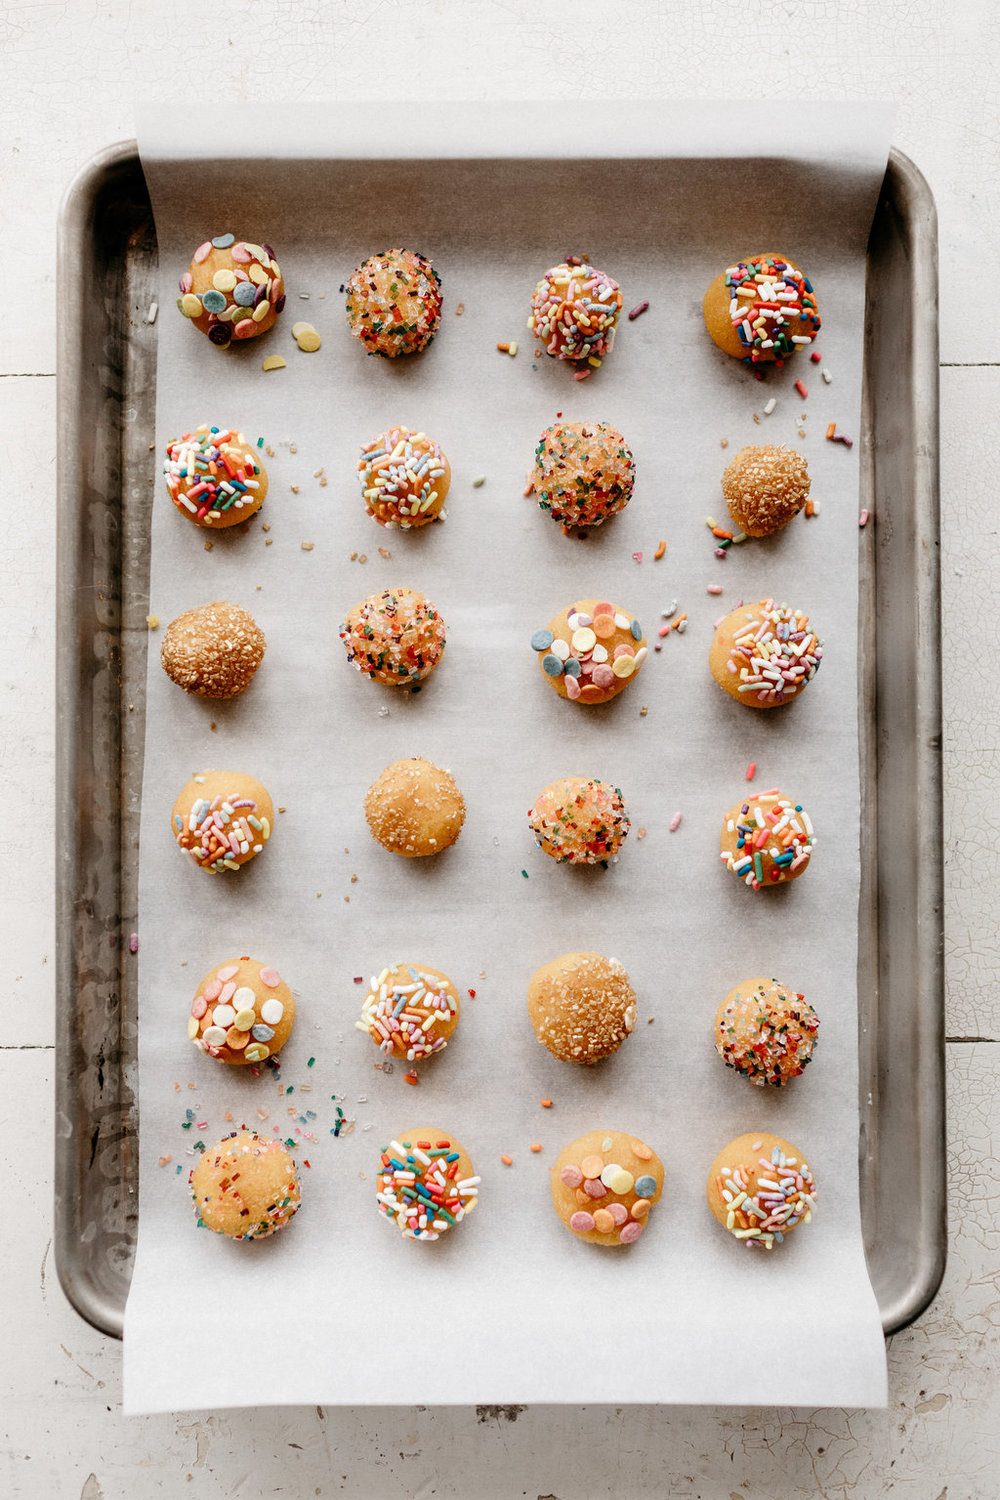 molly-yeh-bobsredmill-marzipan-cookies-20.jpg